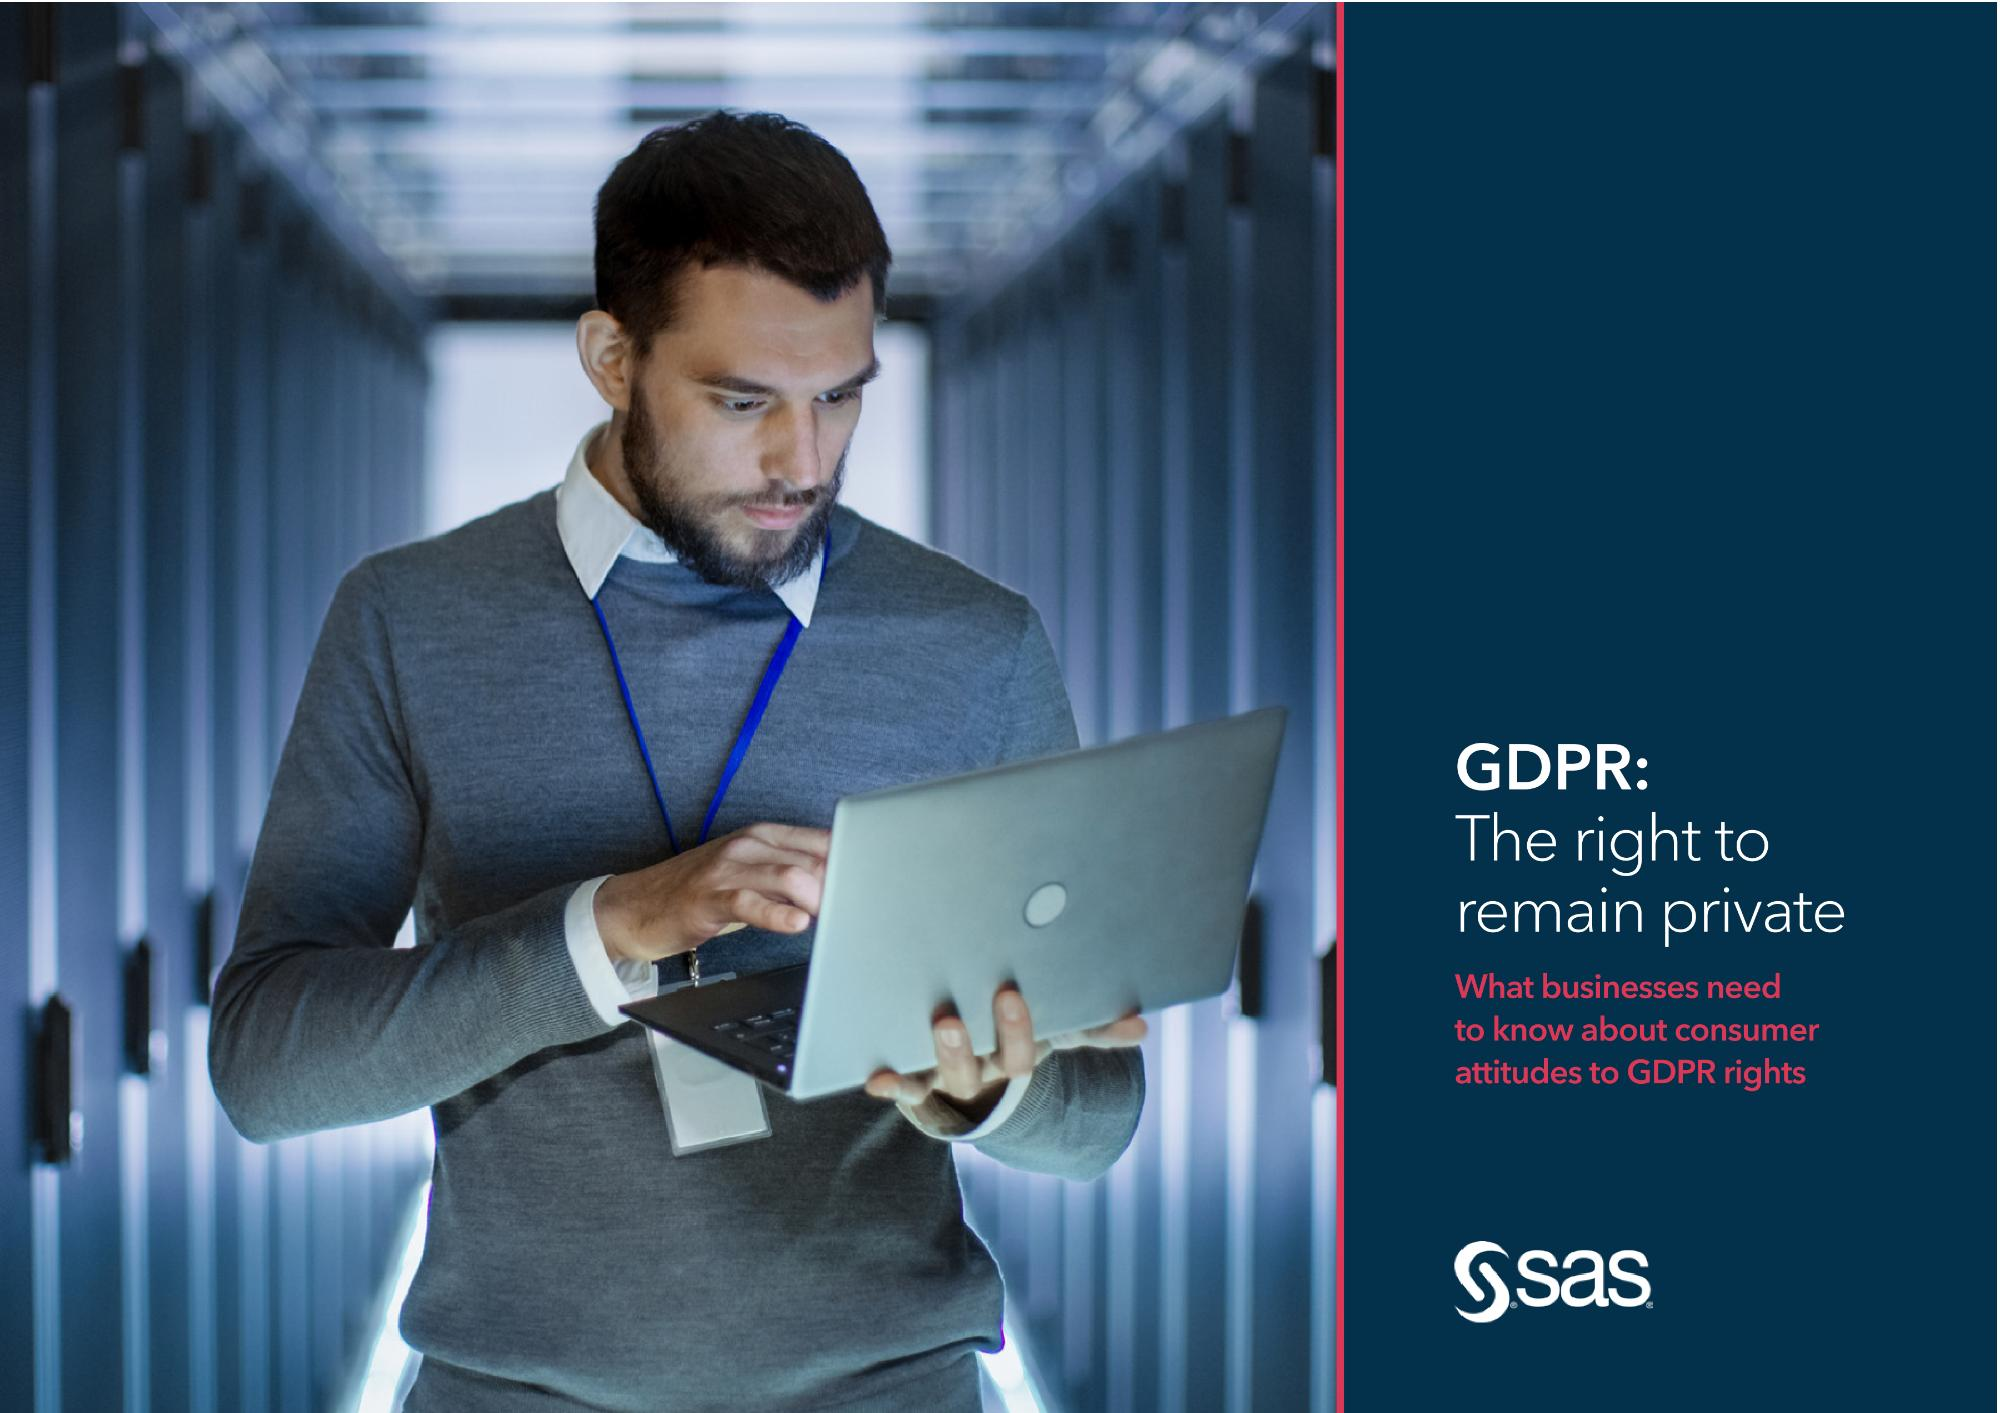 GDPR: The right to remain private